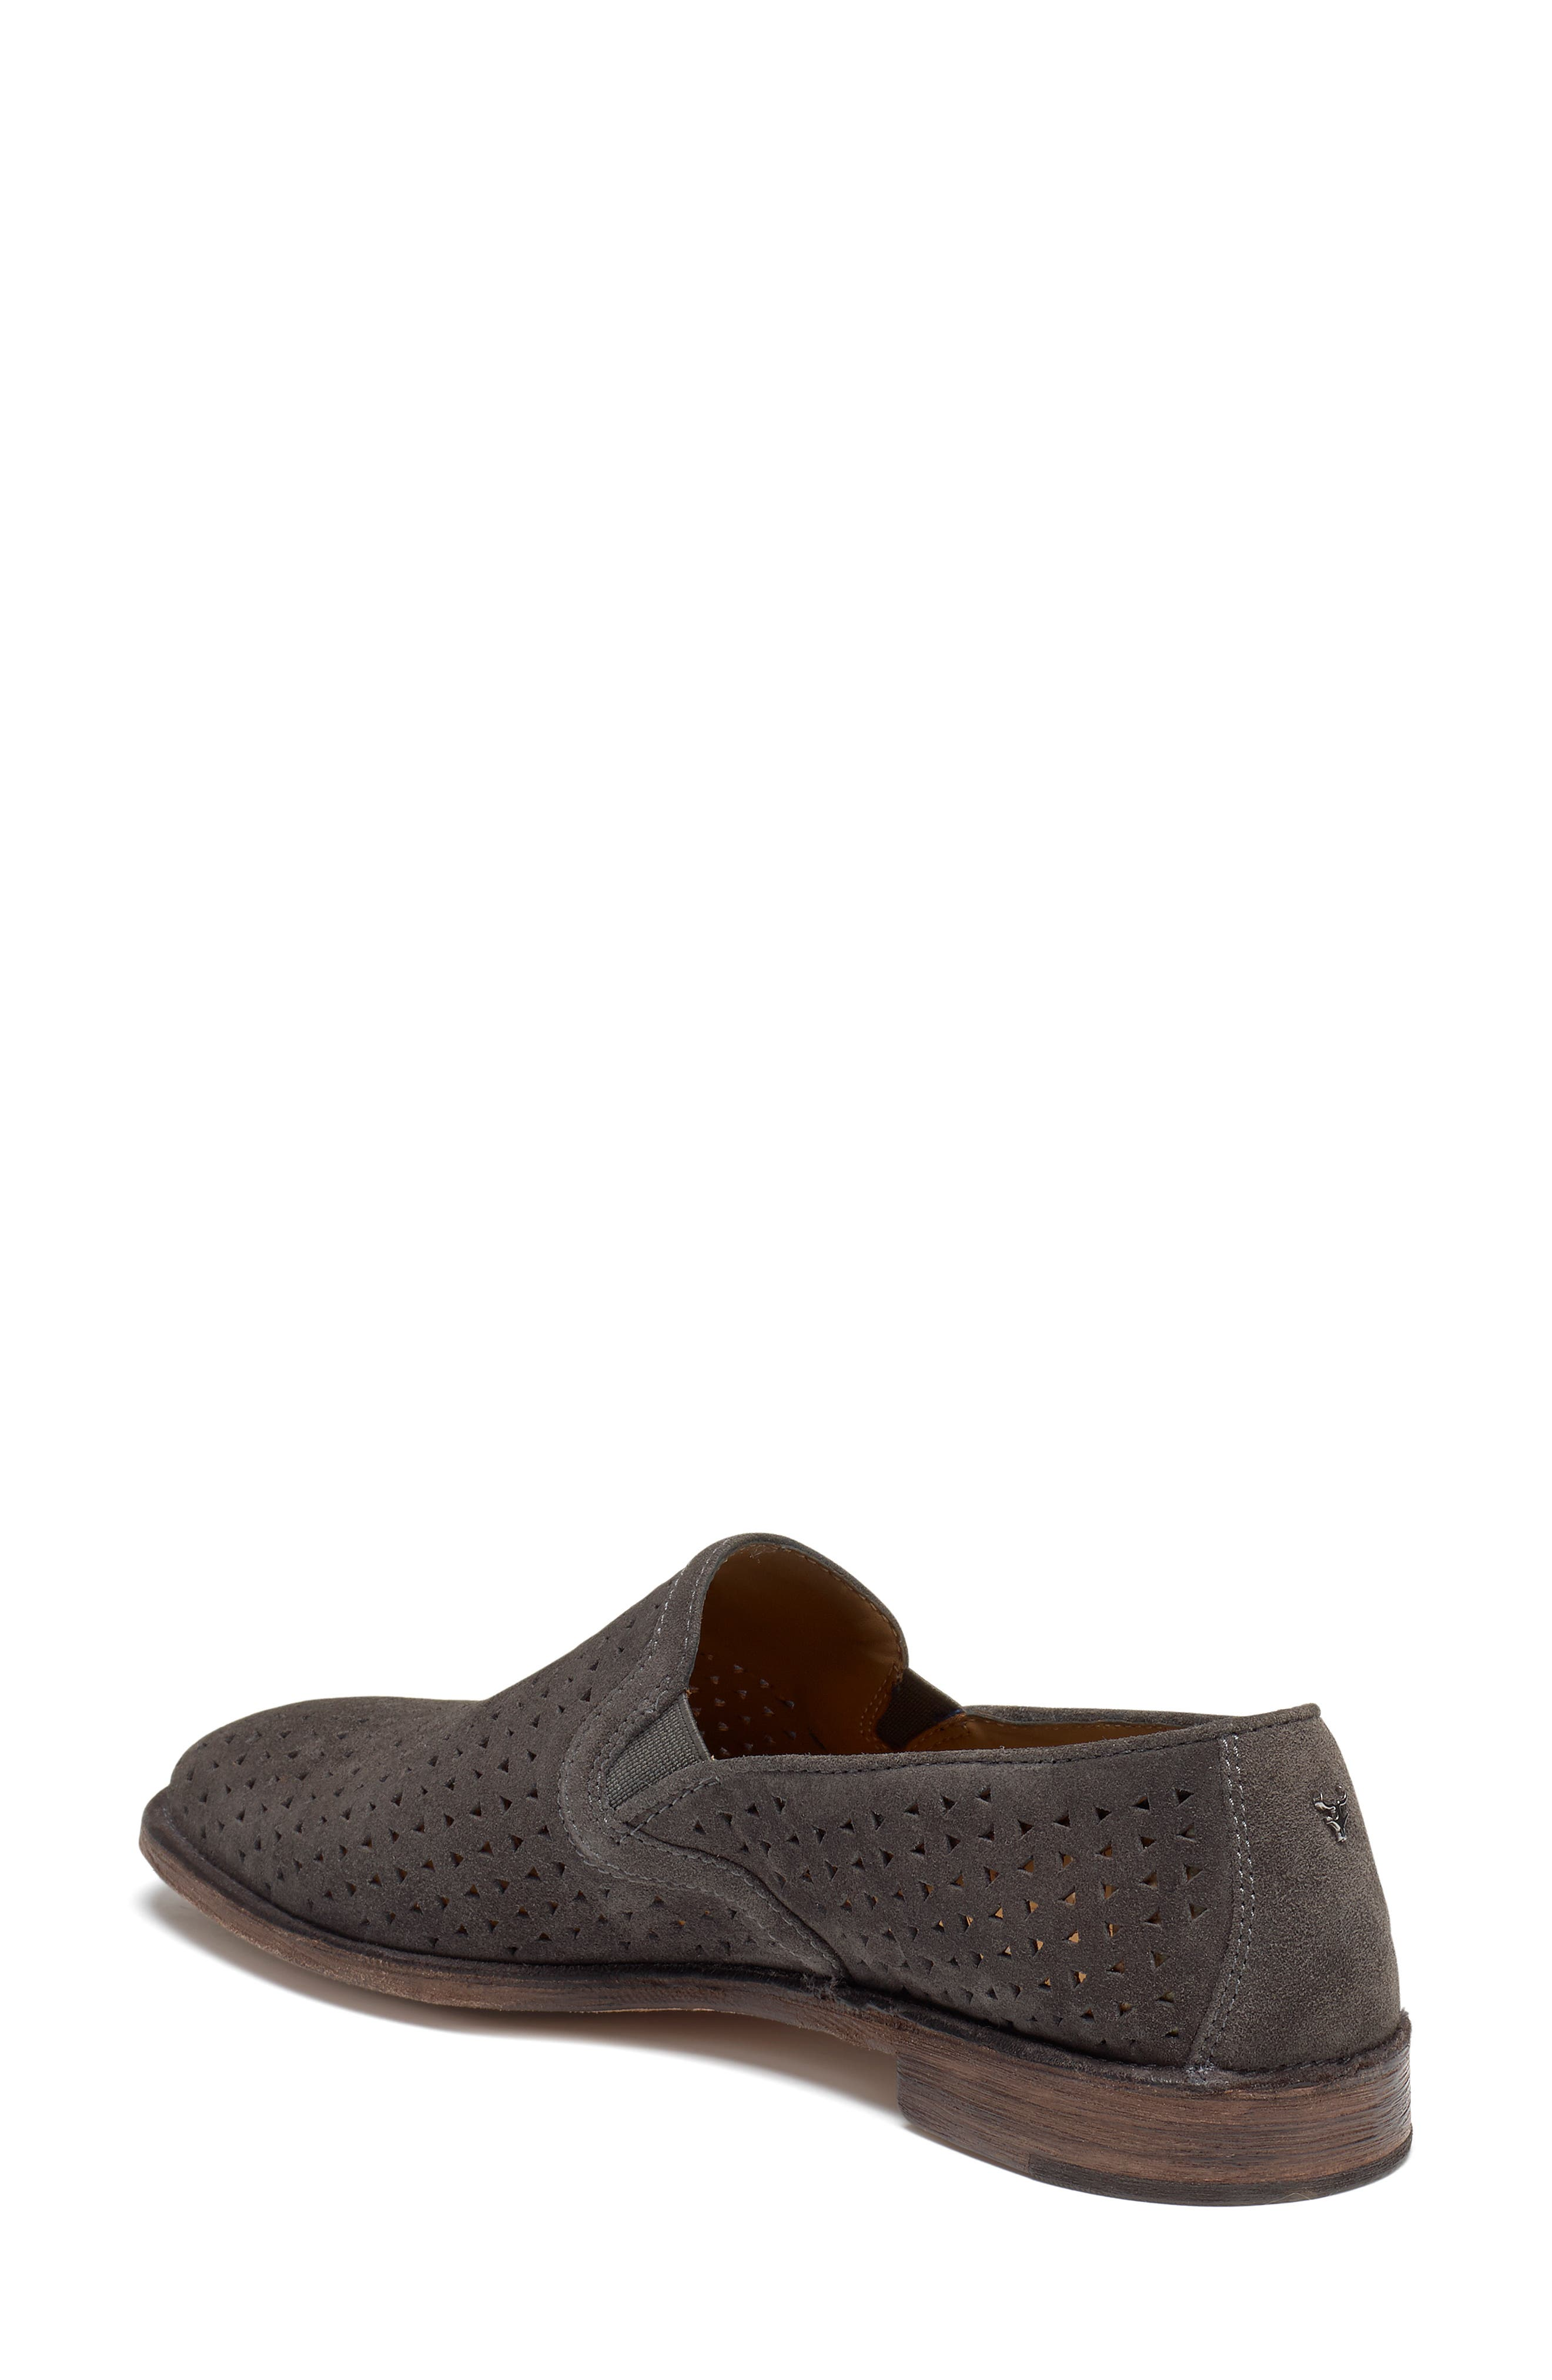 Ali Perforated Loafer,                             Alternate thumbnail 2, color,                             GREY SUEDE